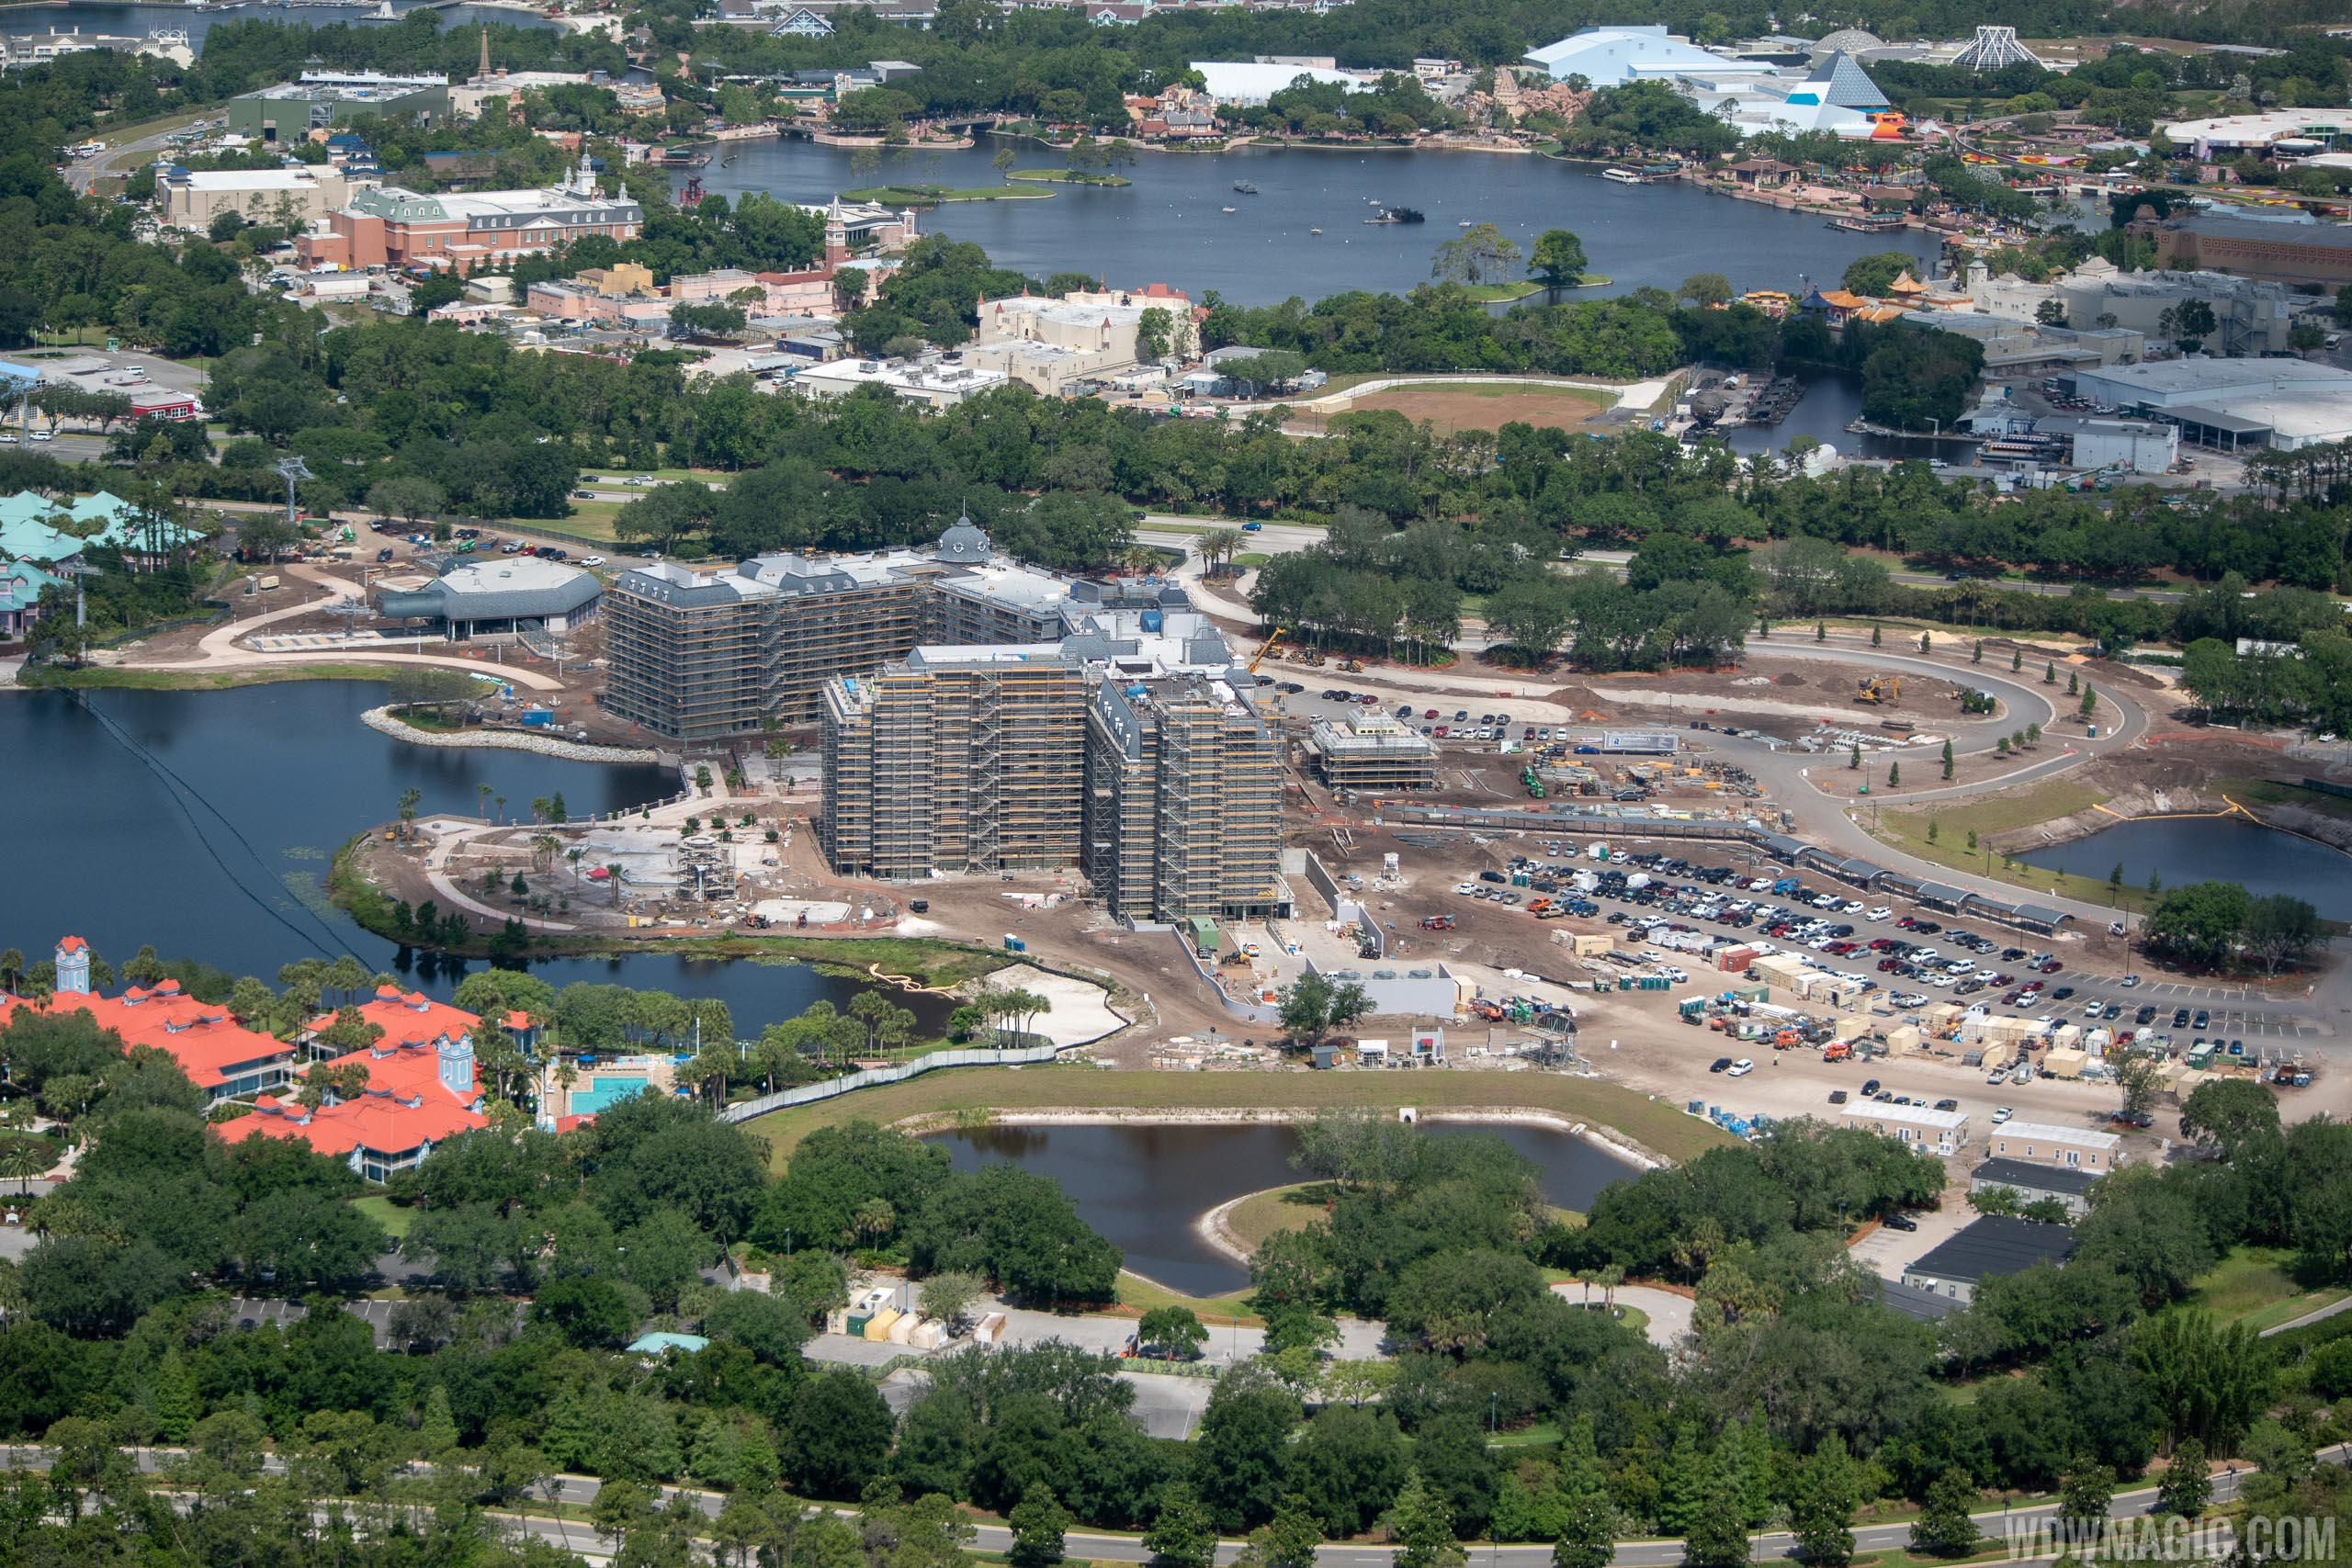 Disney Riviera construction from the air - May 2019